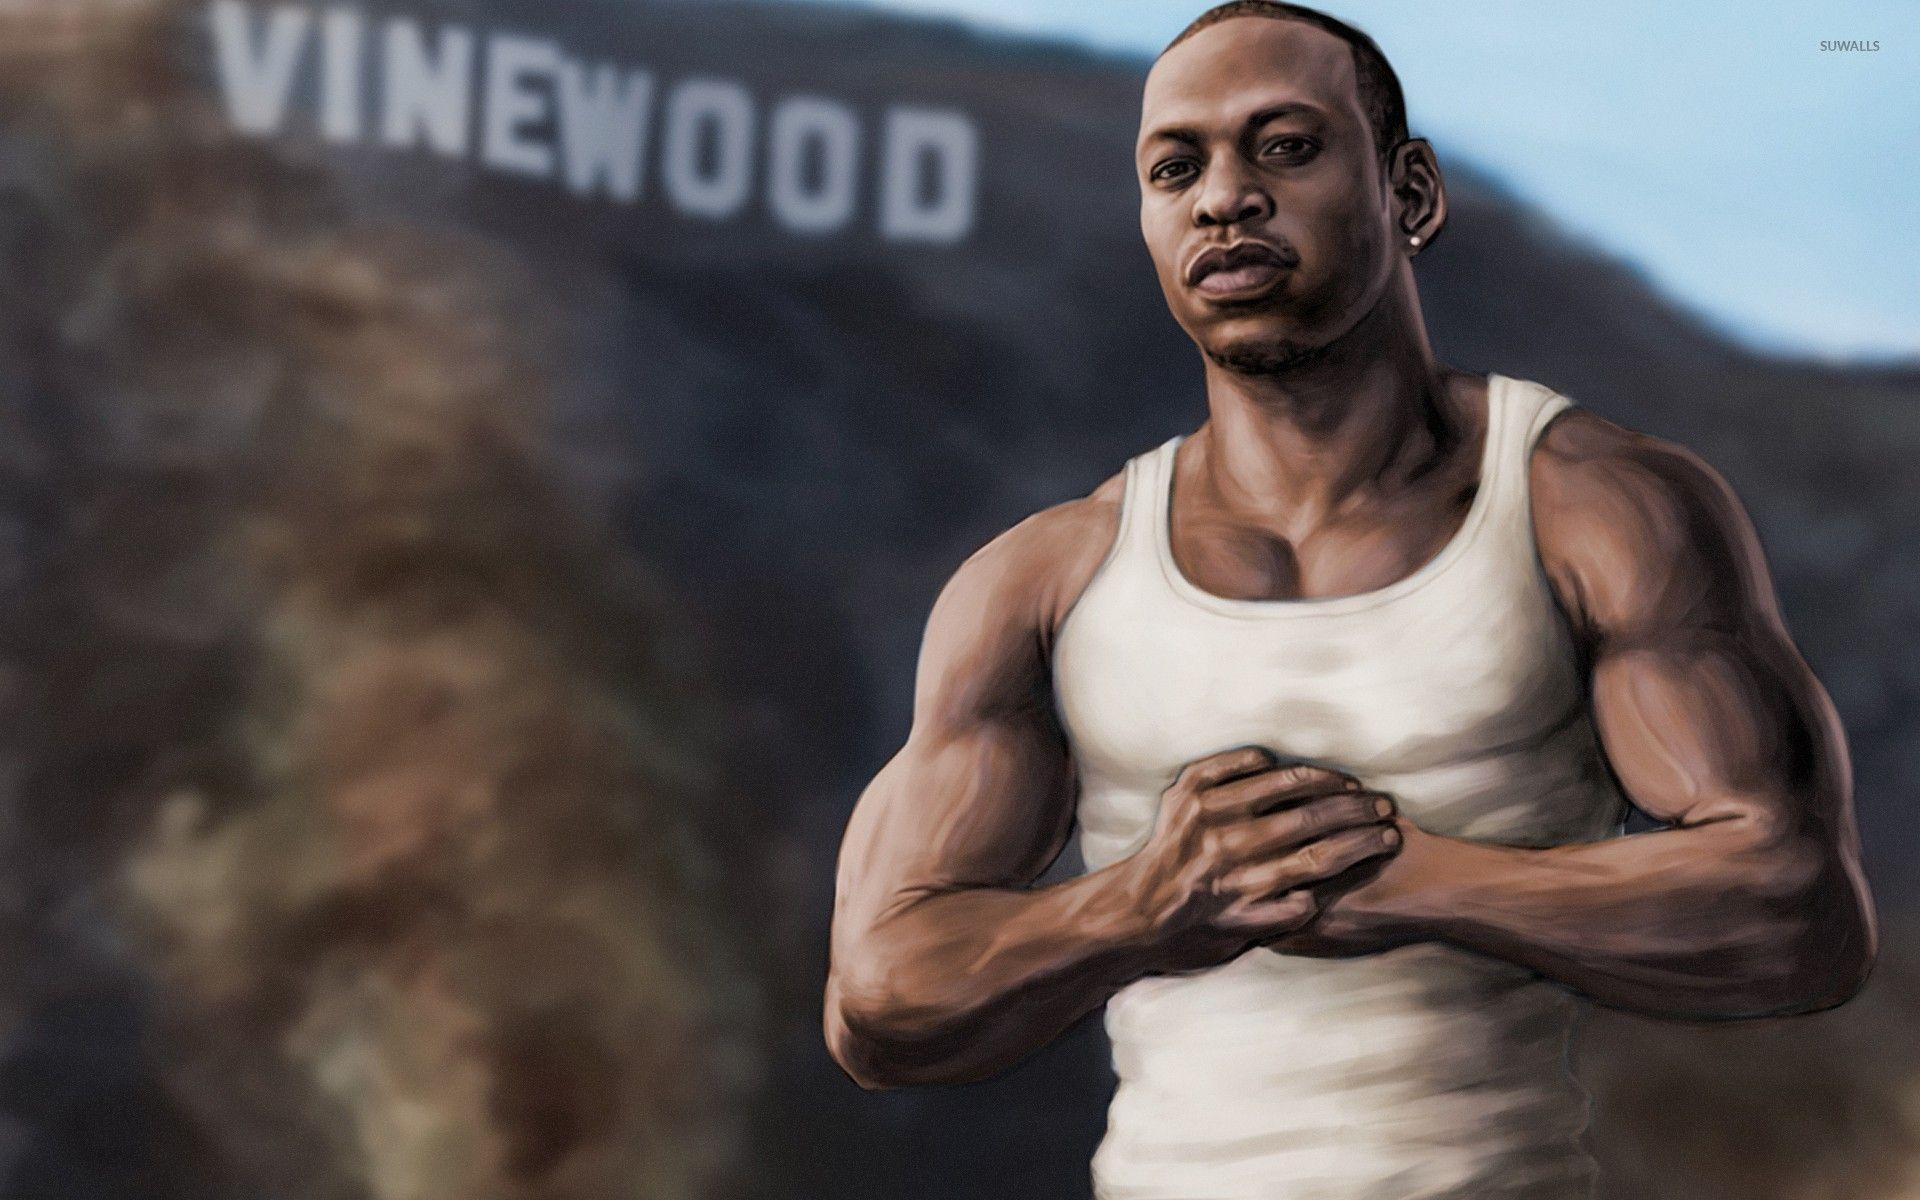 Grand Theft Auto San Andreas Wallpaper Game Wallpapers